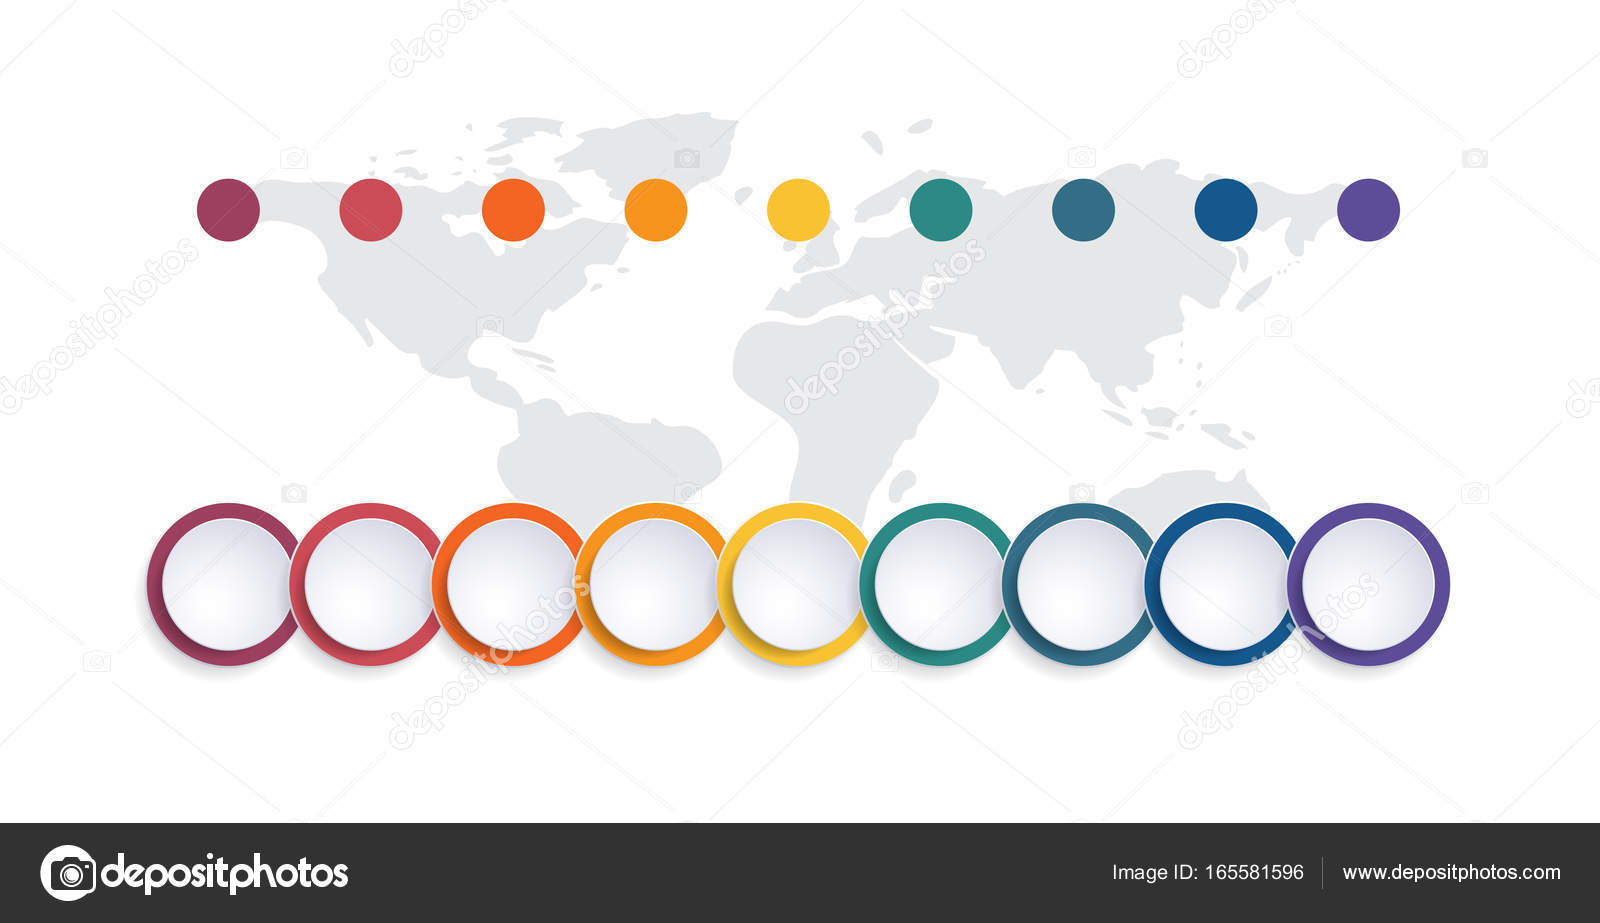 Template infographic color bubble chart 9 positions stock photo template infographic color bubble chart 9 positions stock photo ccuart Images